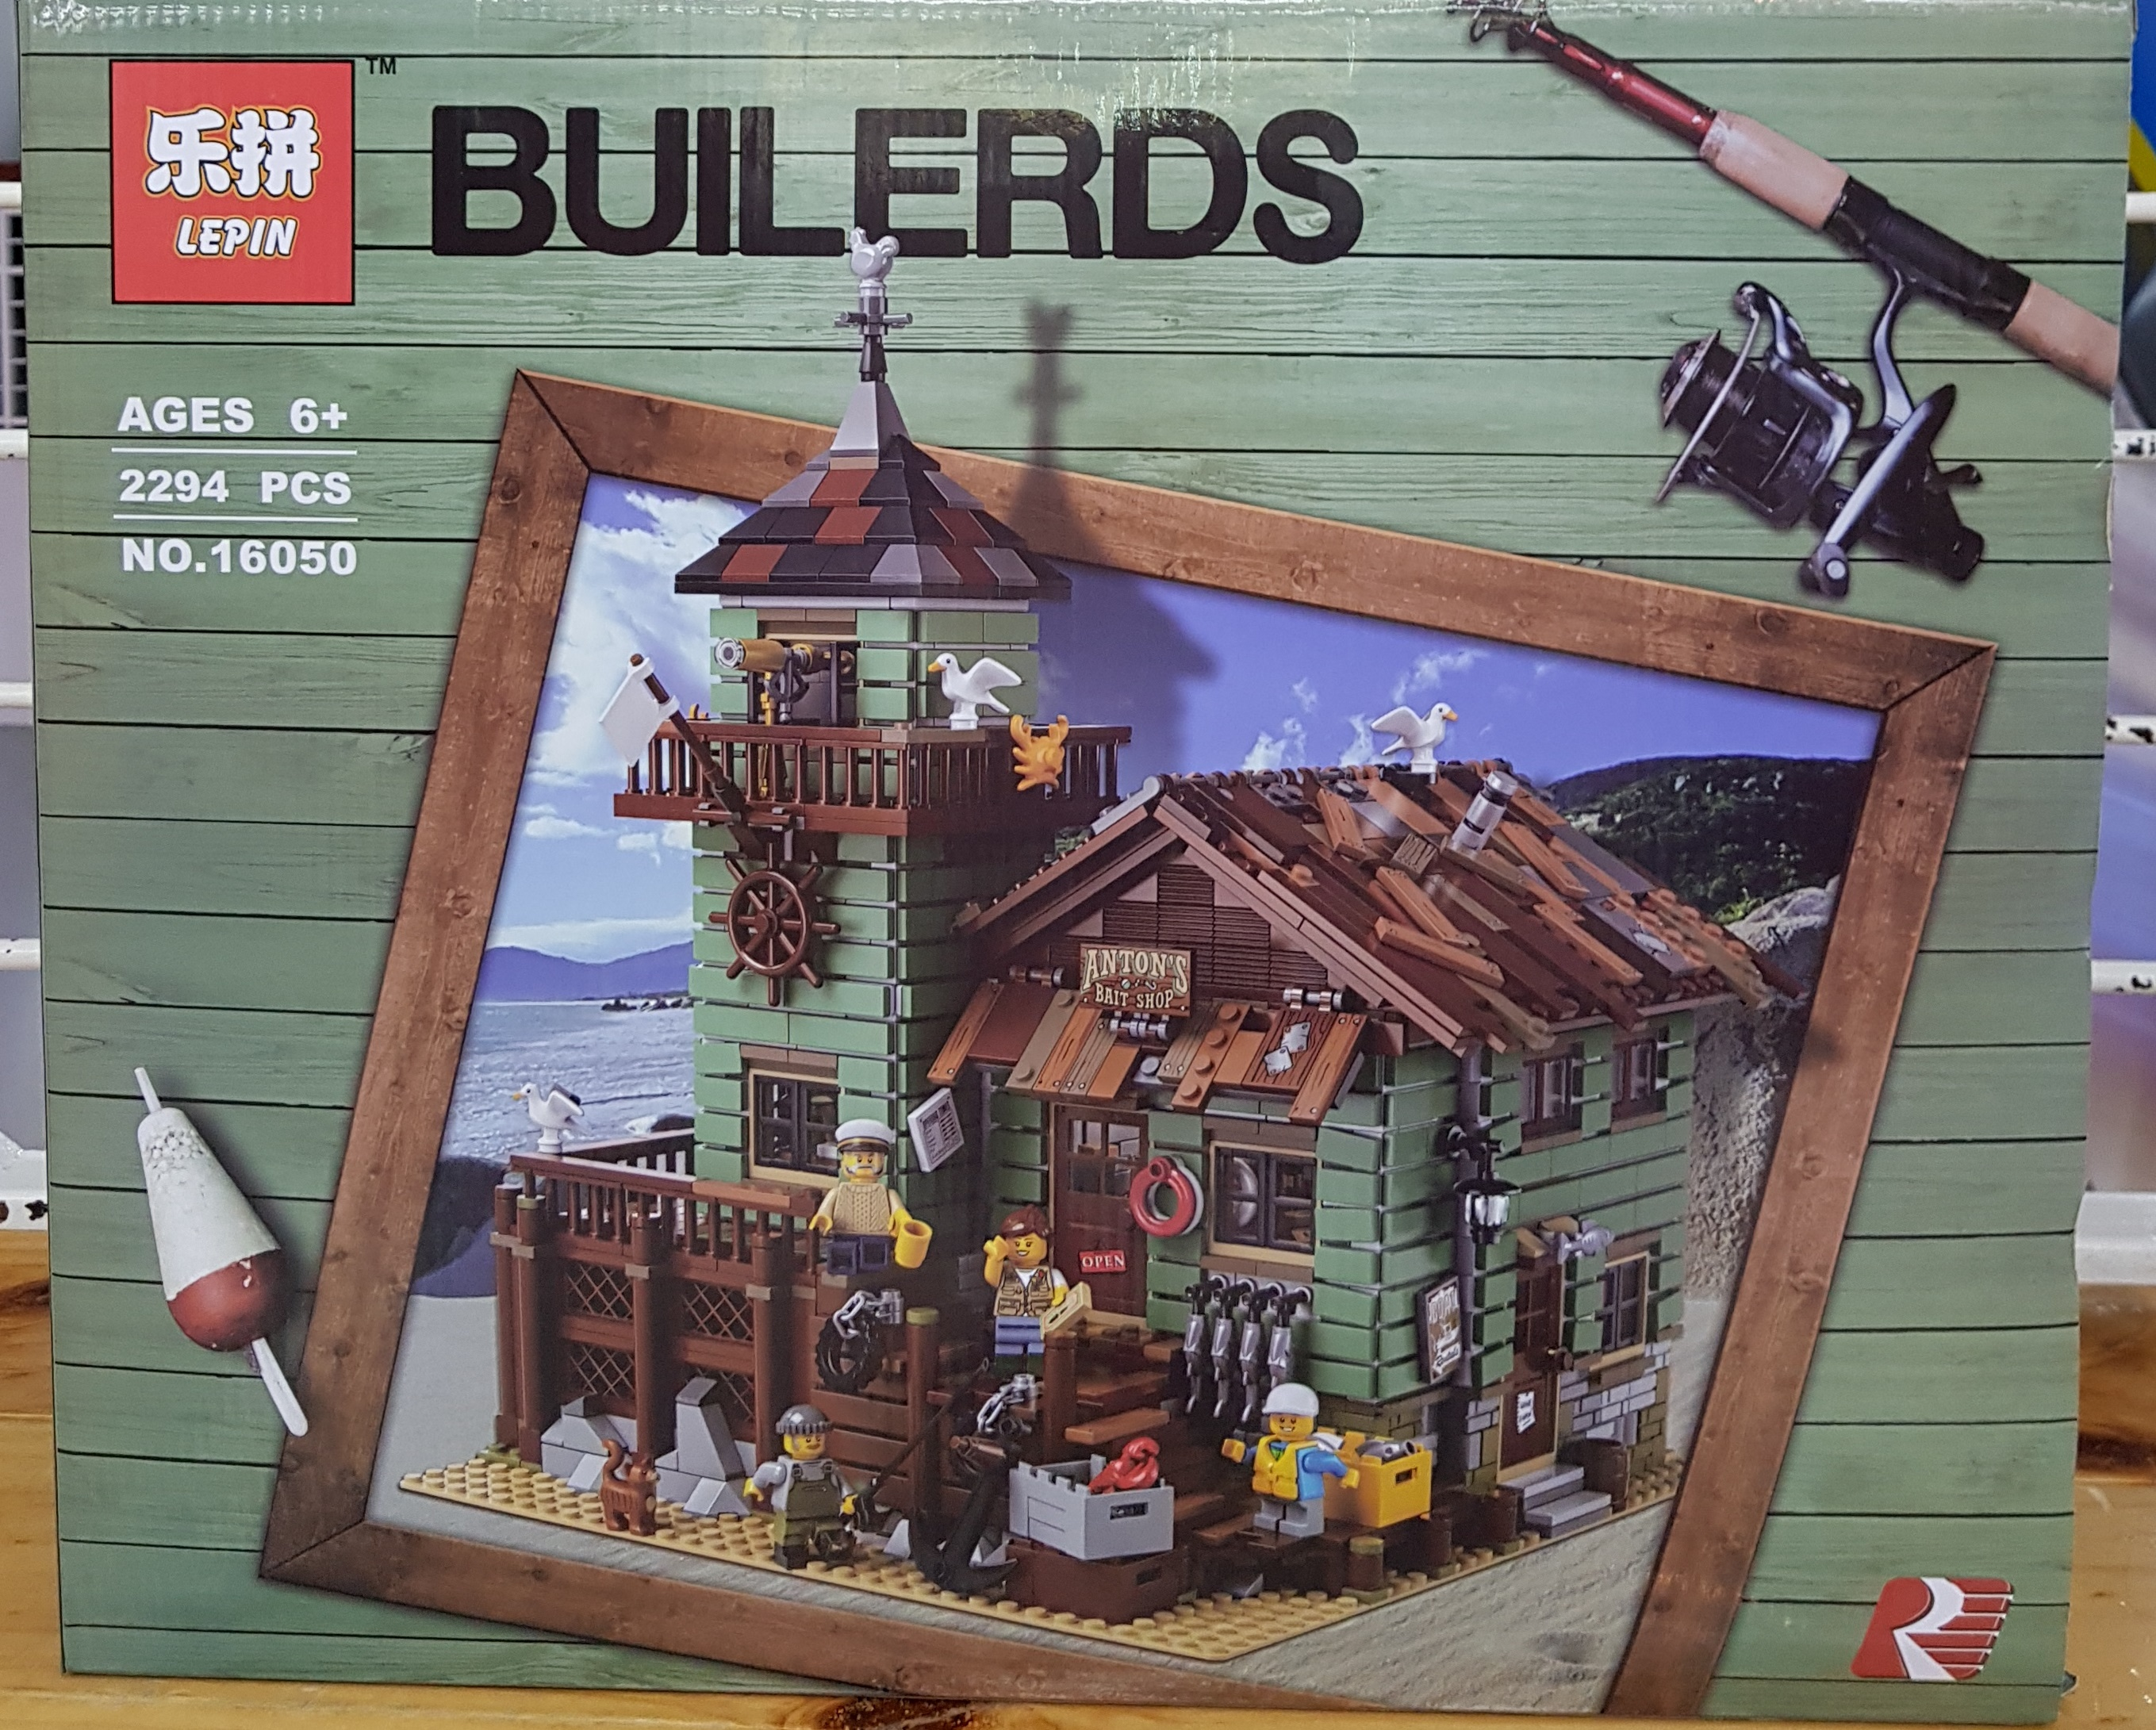 LEPIN BUILERDS 16050 (2294ชิ้น)